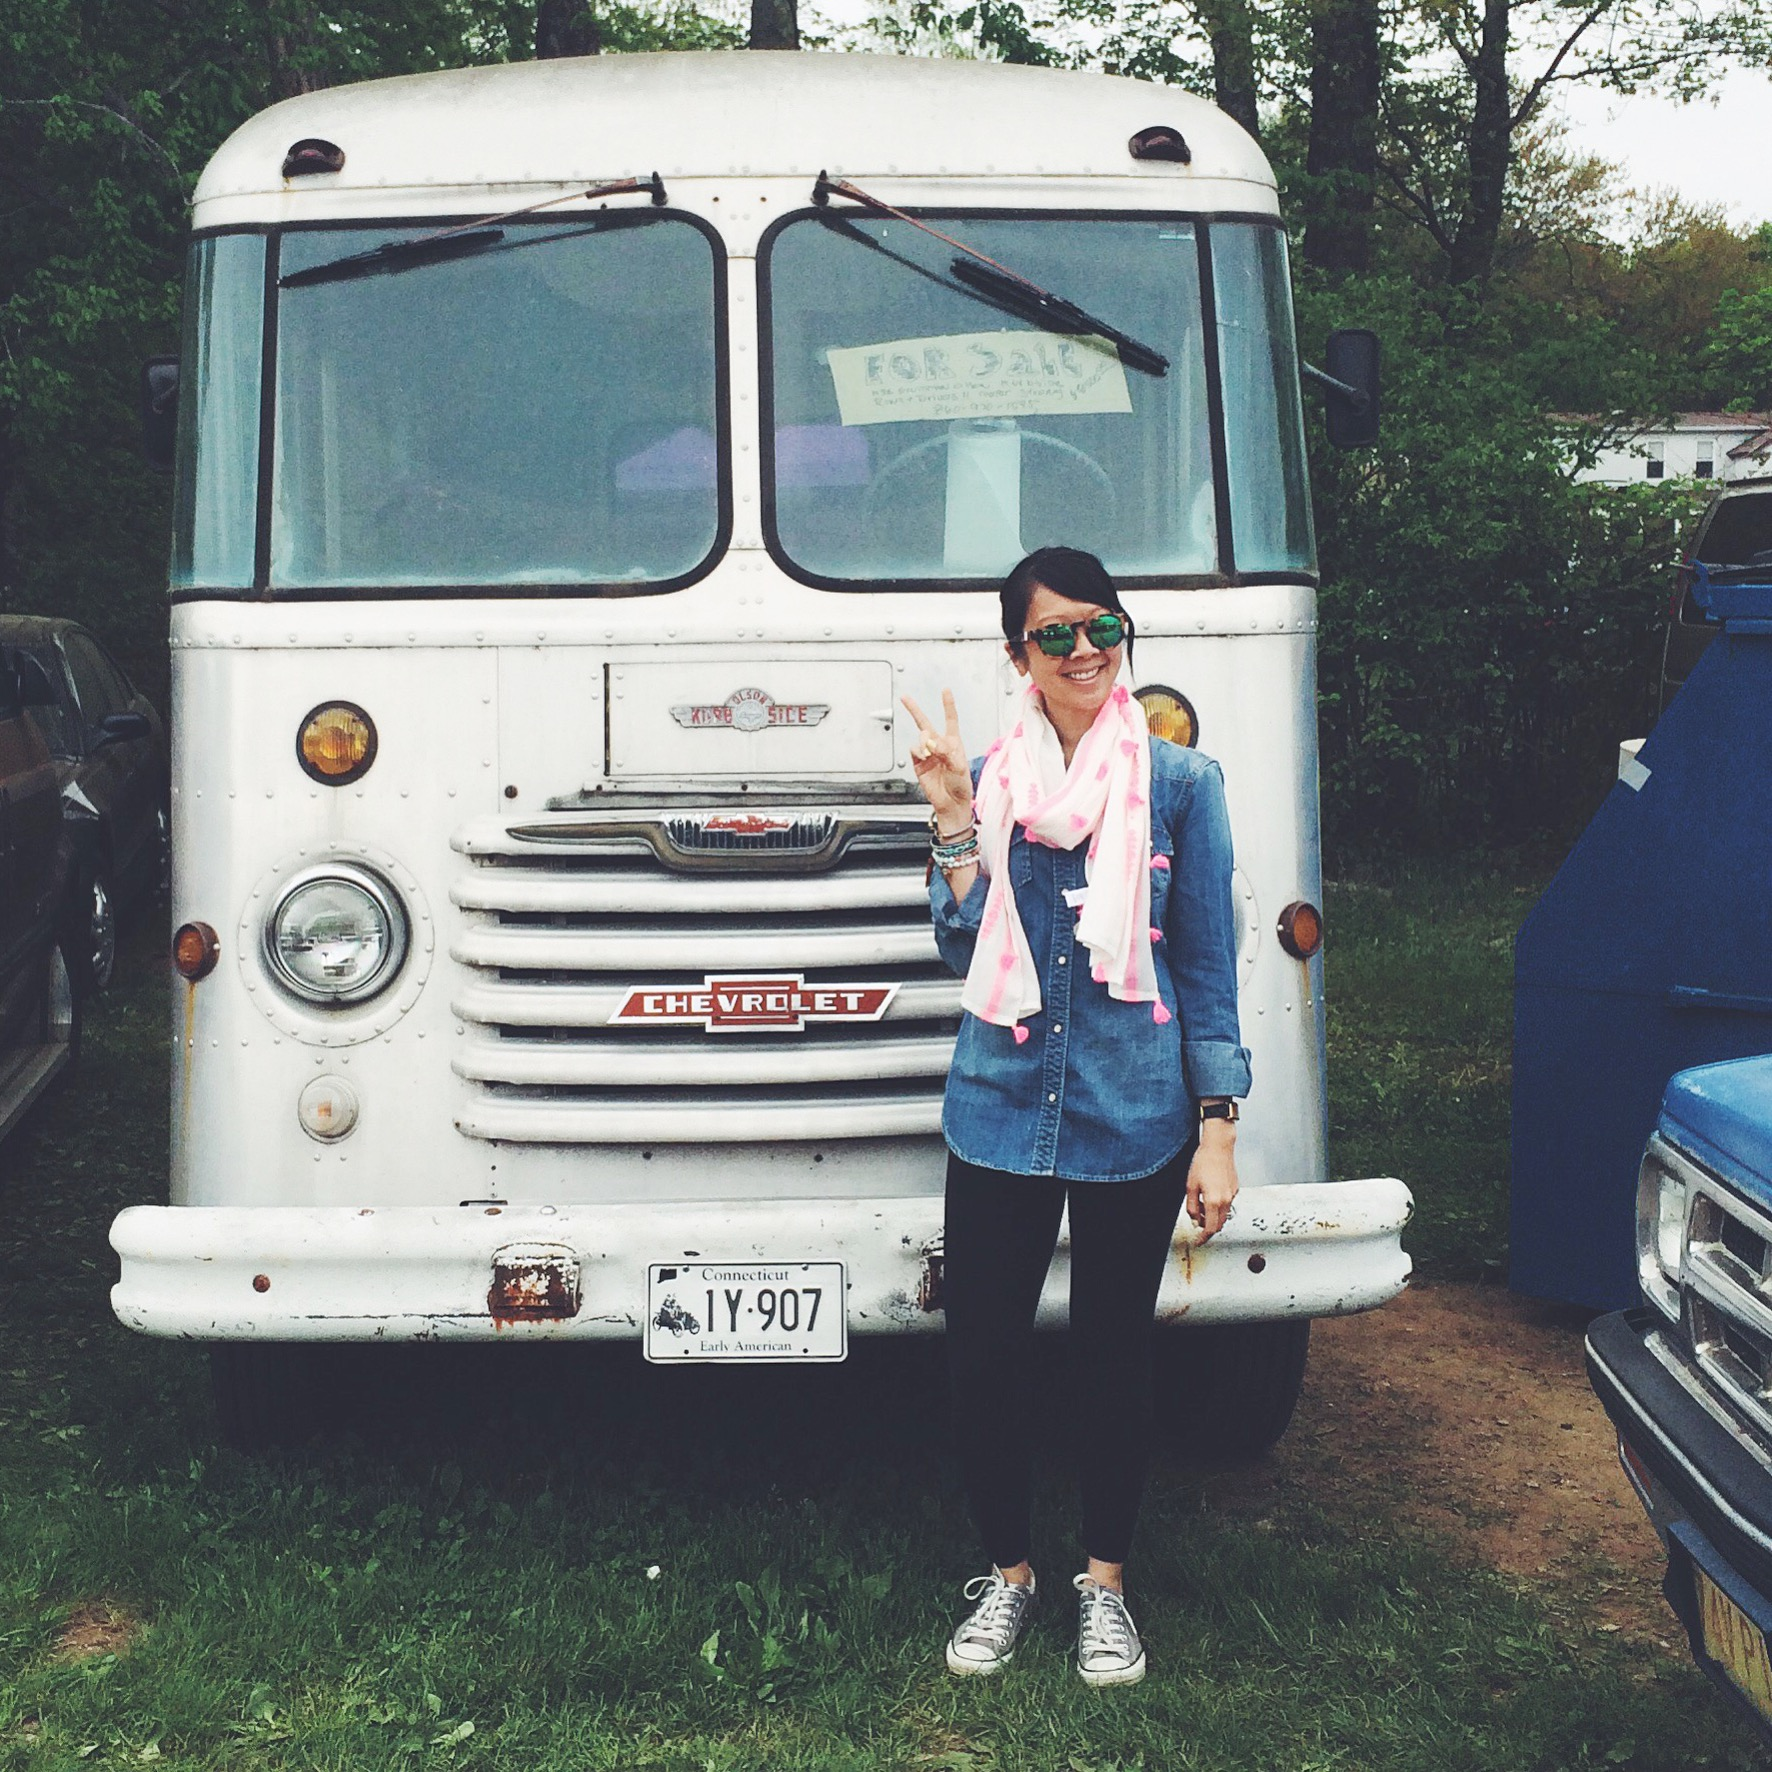 Packed all of our loot into this bus I purchased and headed home. Peace out Brimfield!! (Totally kidding about the bus.)